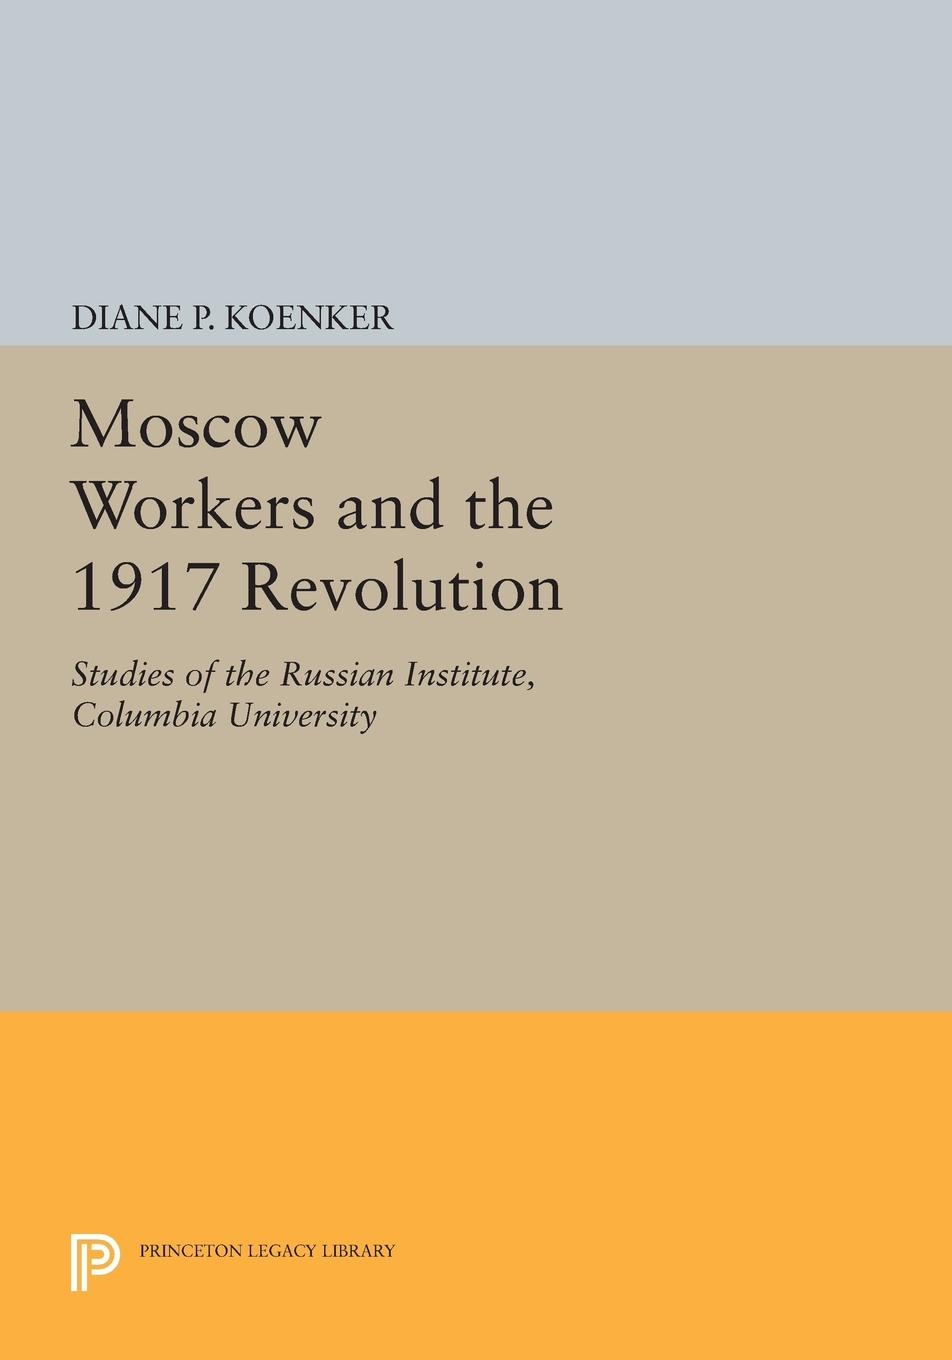 Diane P. Koenker Moscow Workers and the 1917 Revolution. Studies of the Russian Institute, Columbia University стоимость